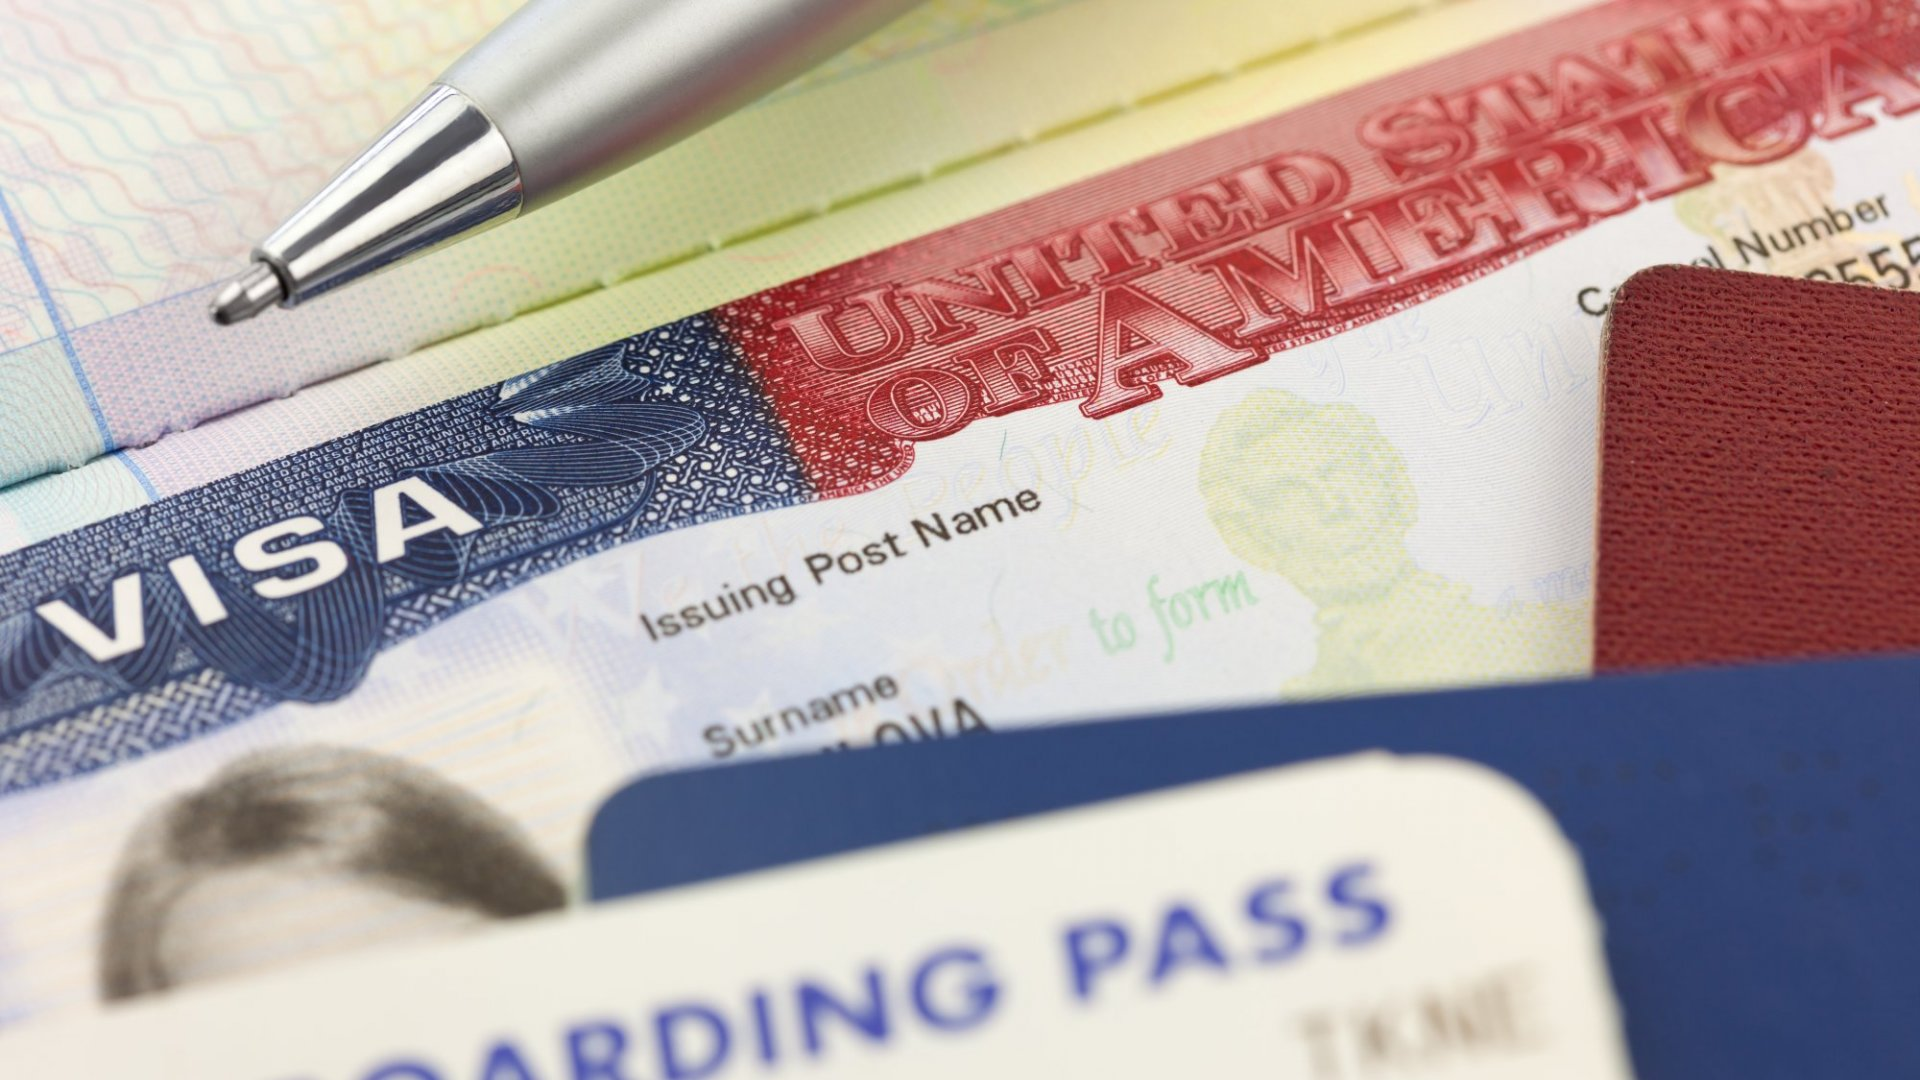 Does Your Business Need a Visa for International Travel?